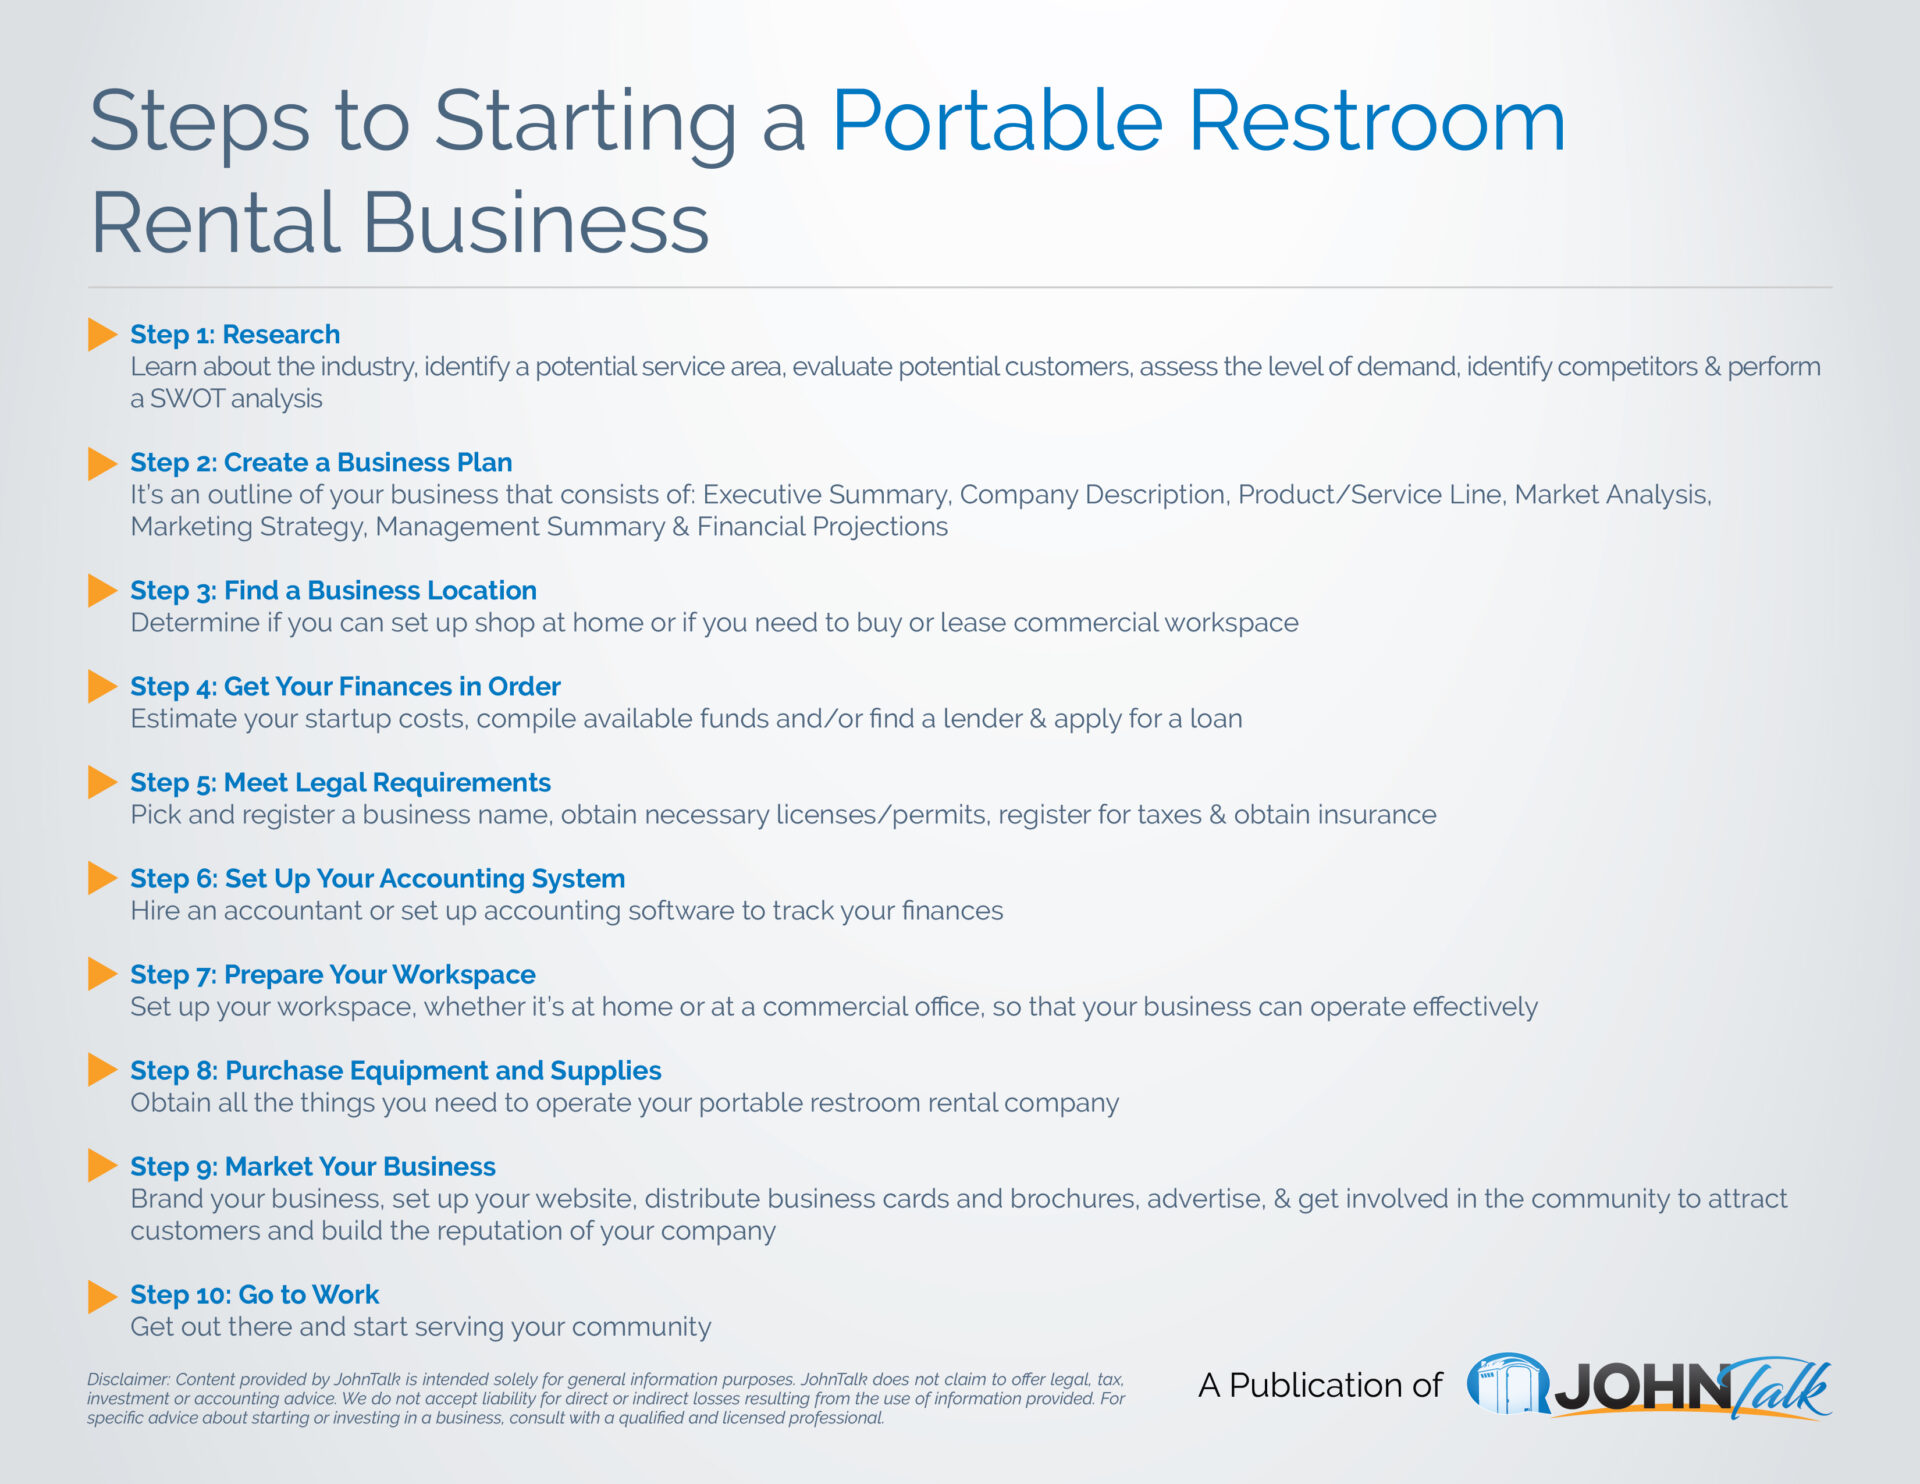 INFOGRAPHIC: Steps to Starting a Portable Restroom Rental